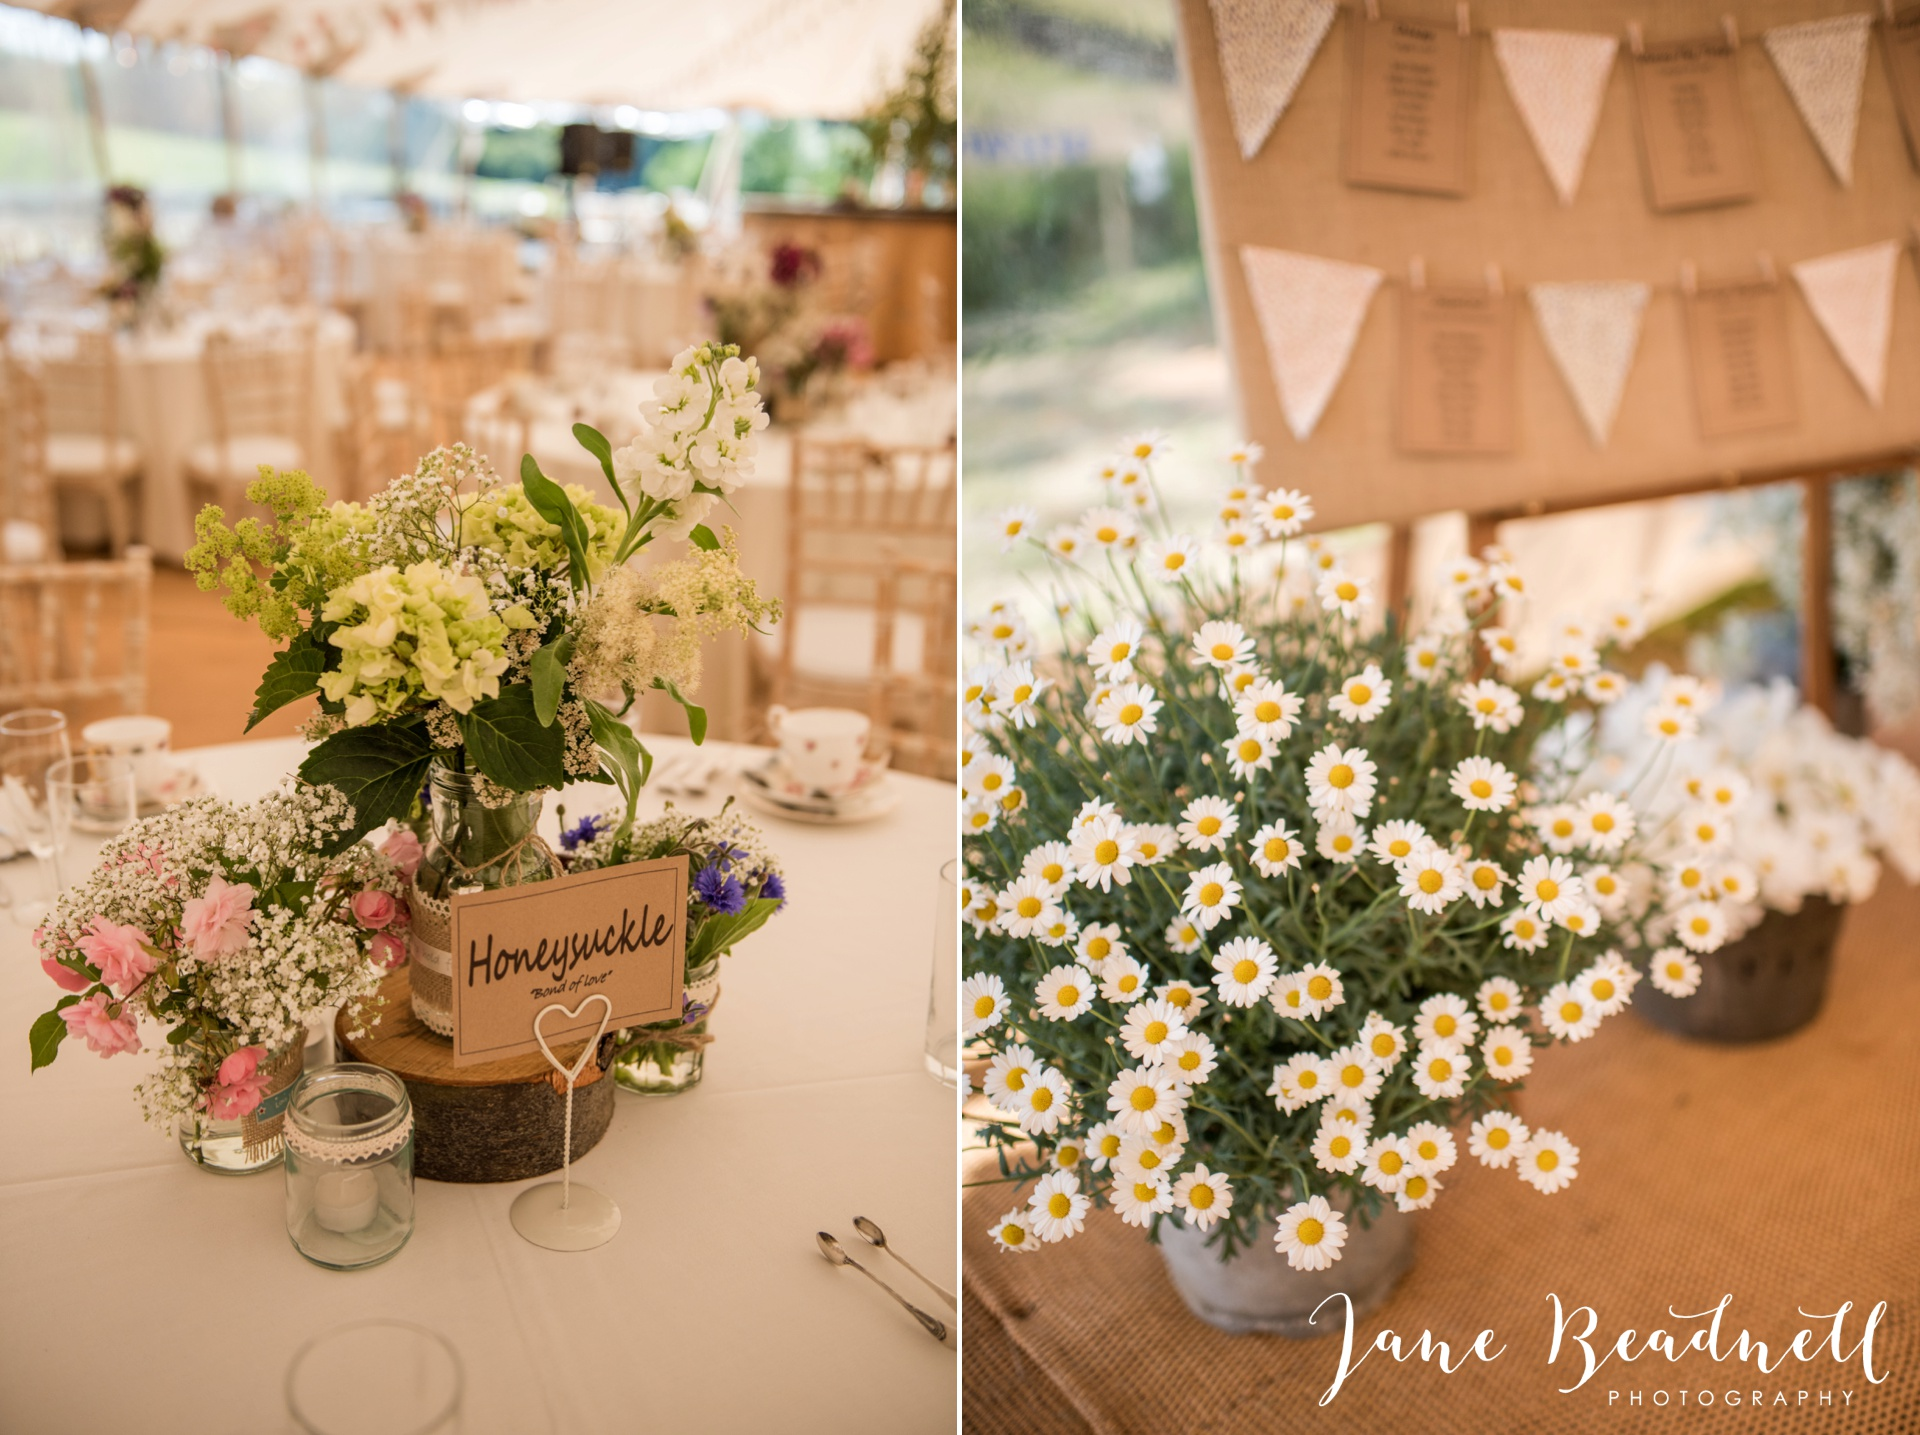 Jane Beadnell fine art wedding photographer Sperry Tent wedding Ilkley_0006